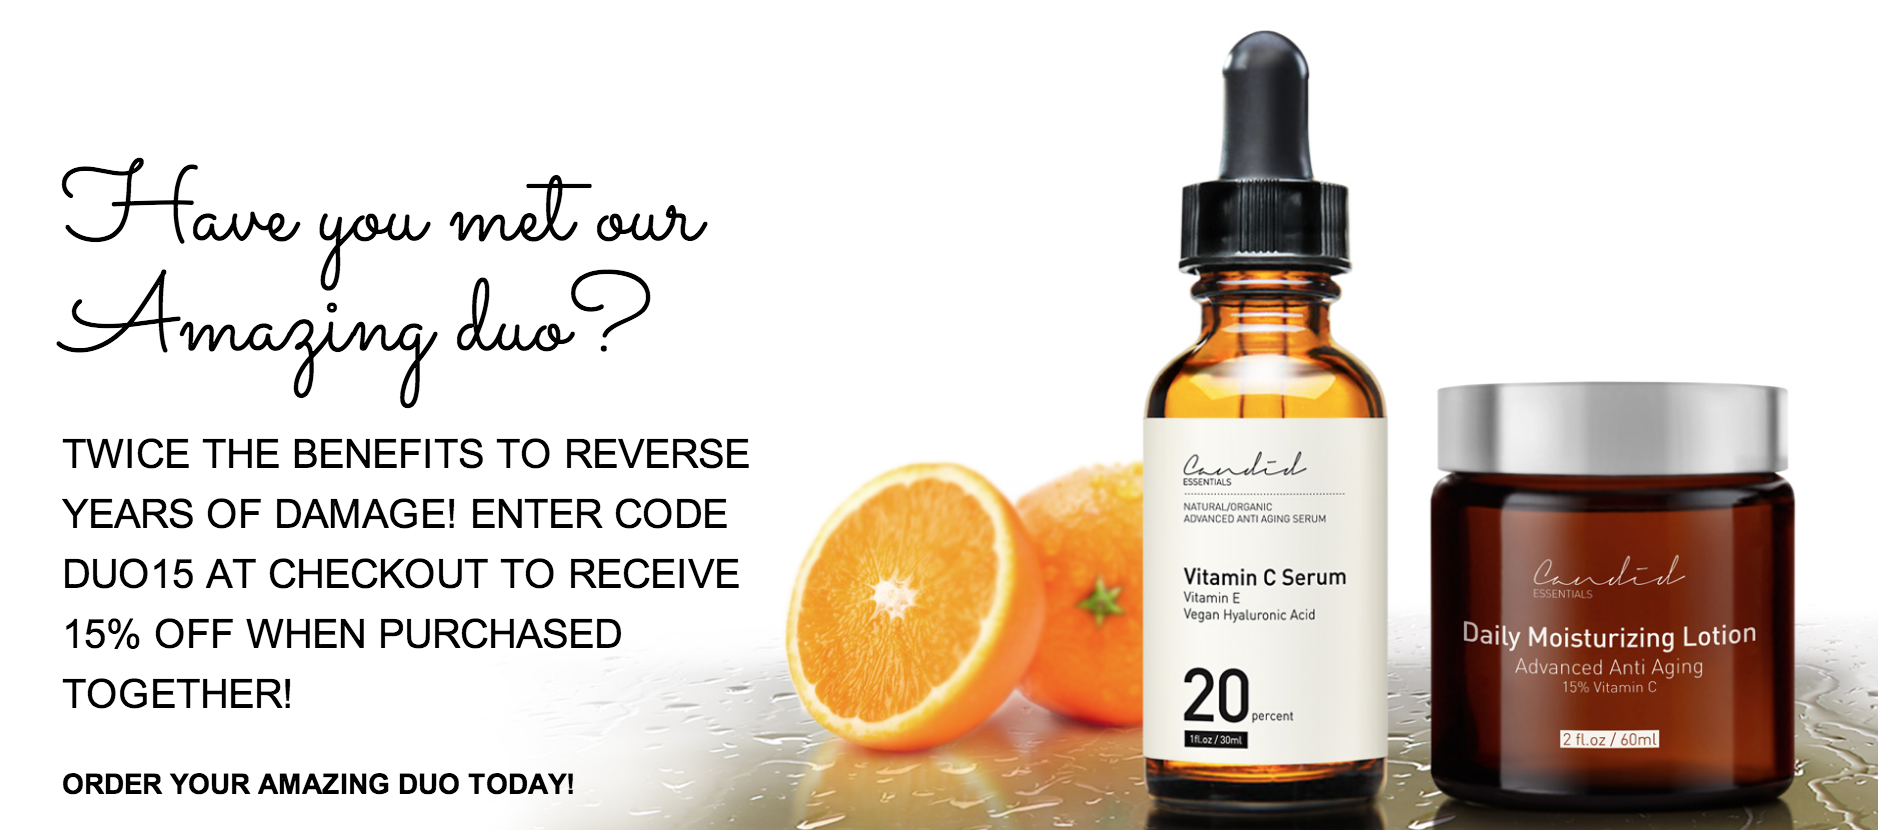 Our Vitamin C Serum and Daily Moisturizing Lotion work